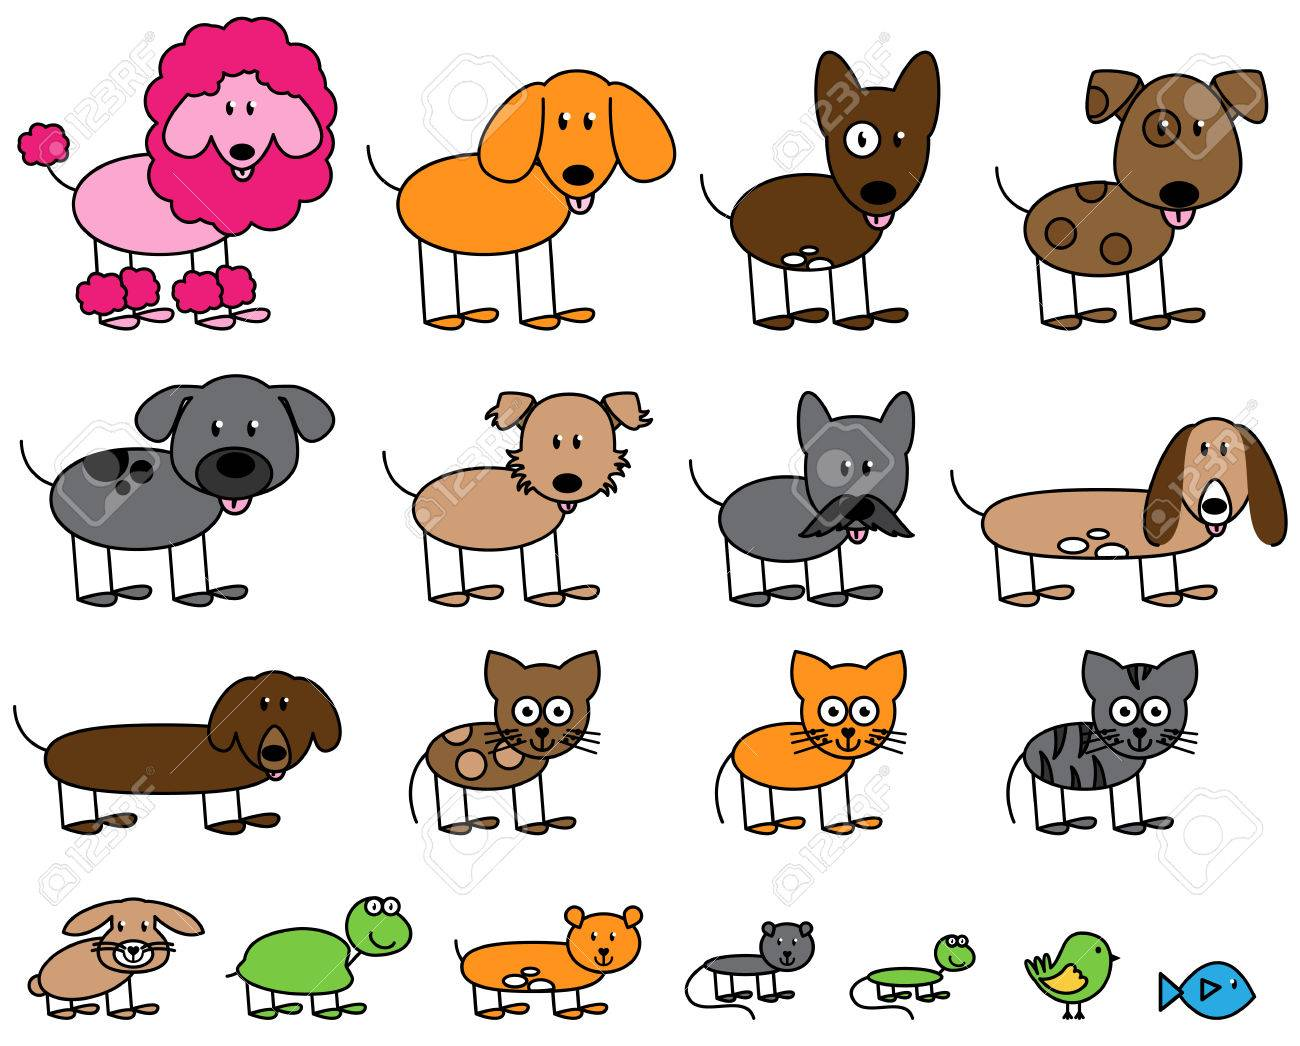 Vector Collection of Cute Stick Figure Pets and Animals - 45300350